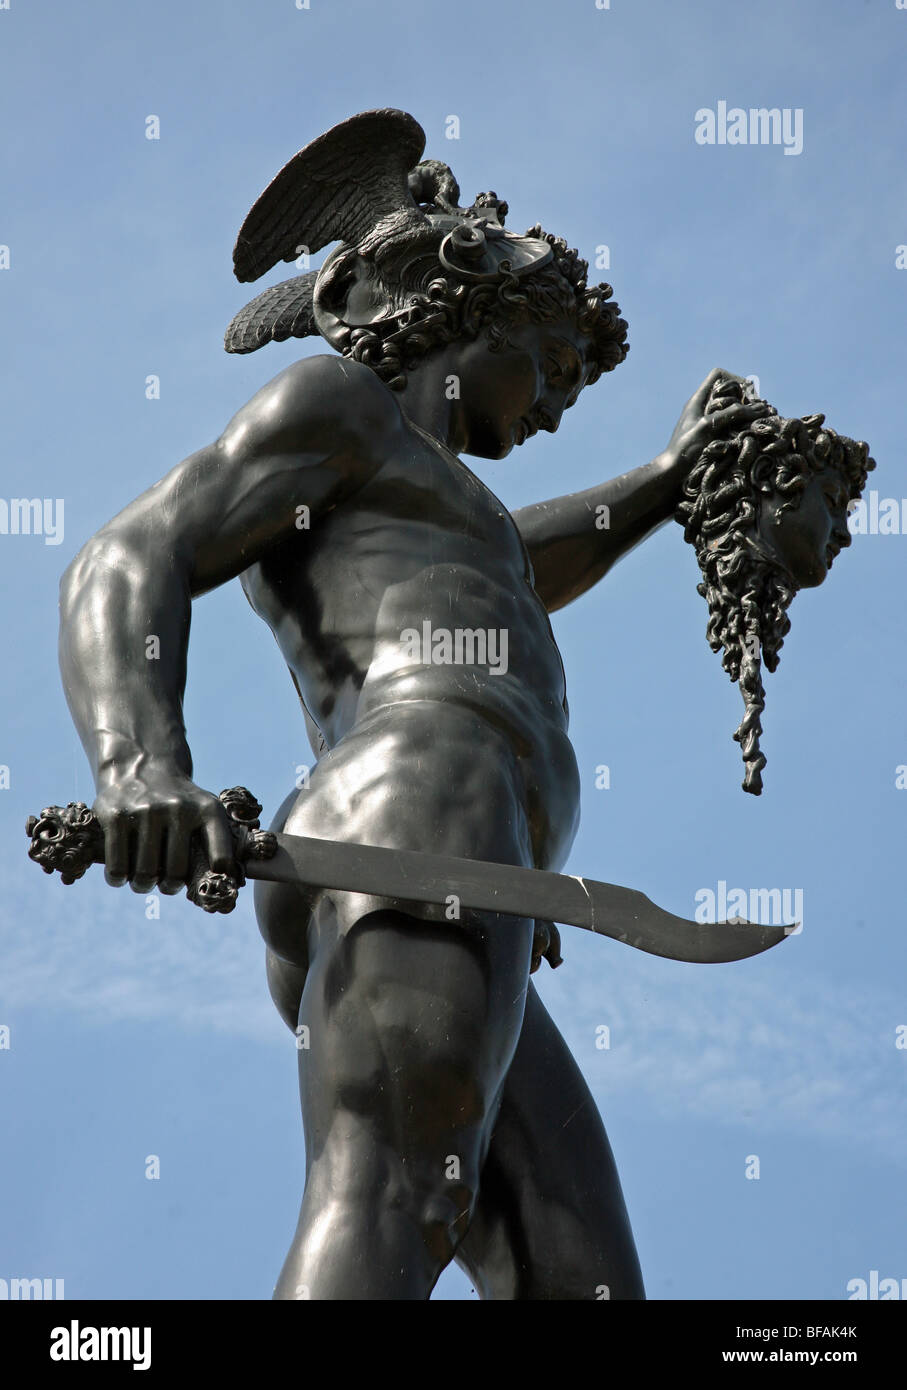 statue of perseus with the head of medussa sculpture at